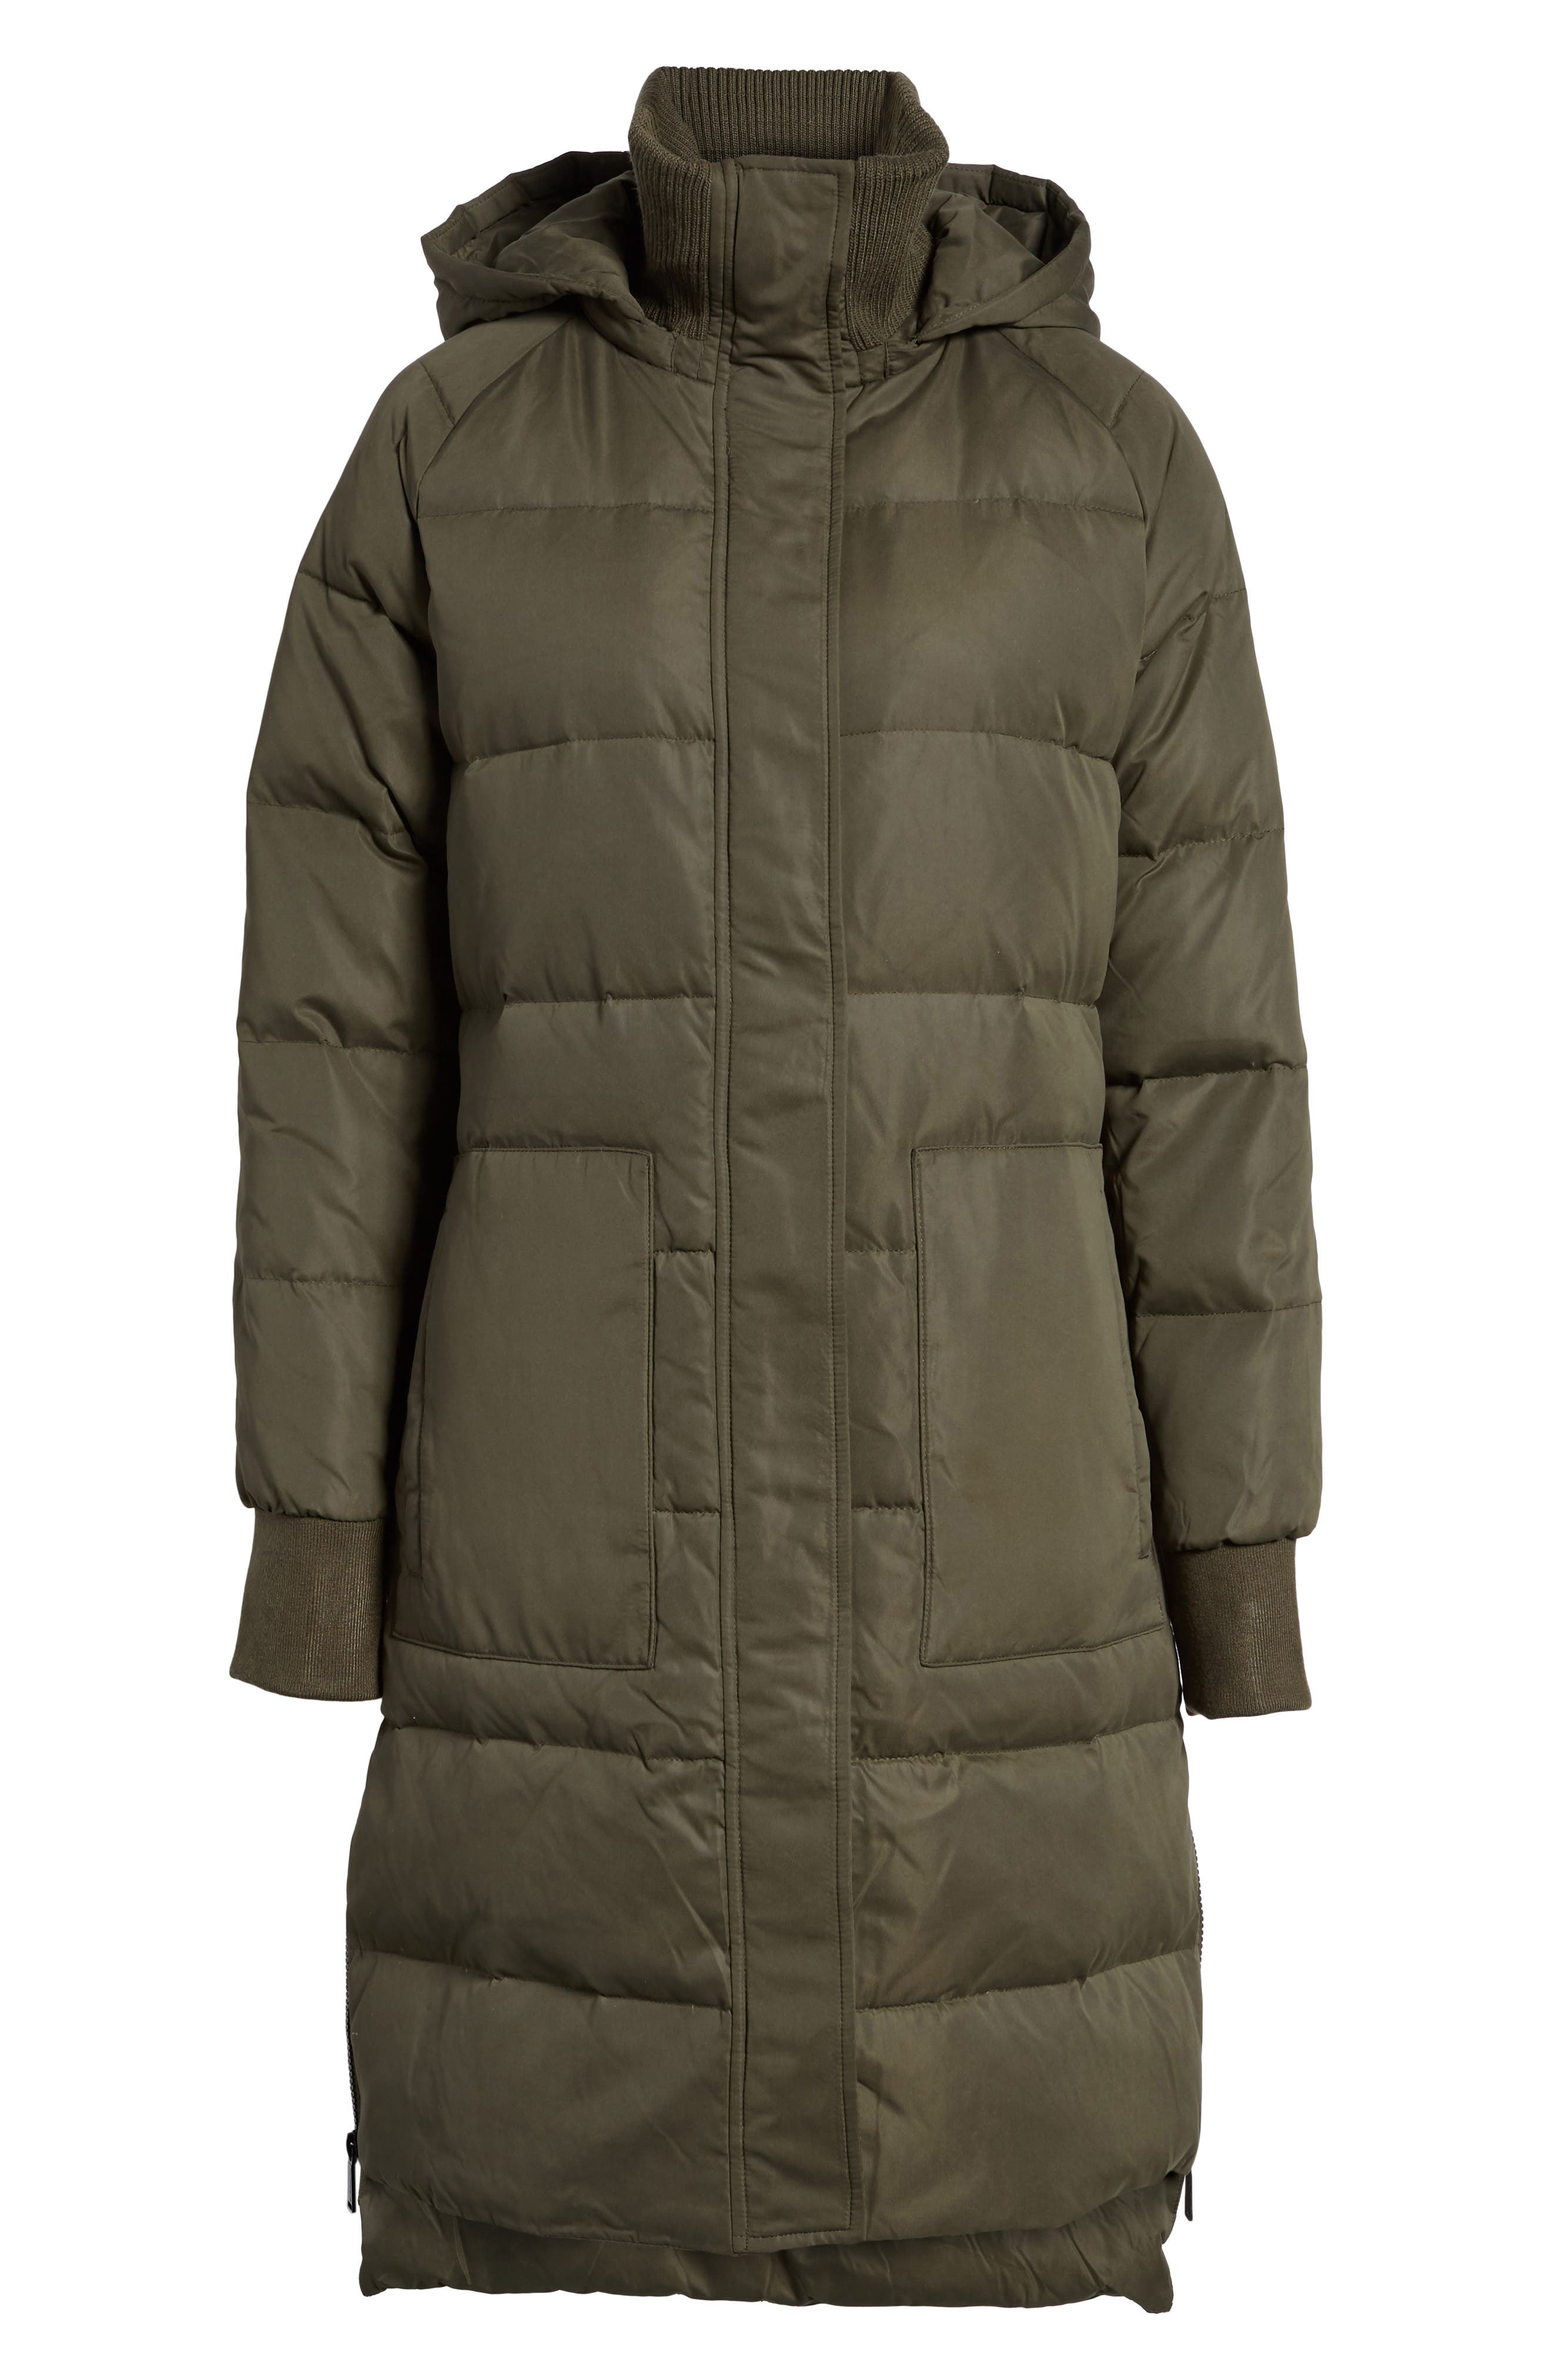 Down & Feather Fill Puffer Jacket,                             Alternate thumbnail 5, color,                             344